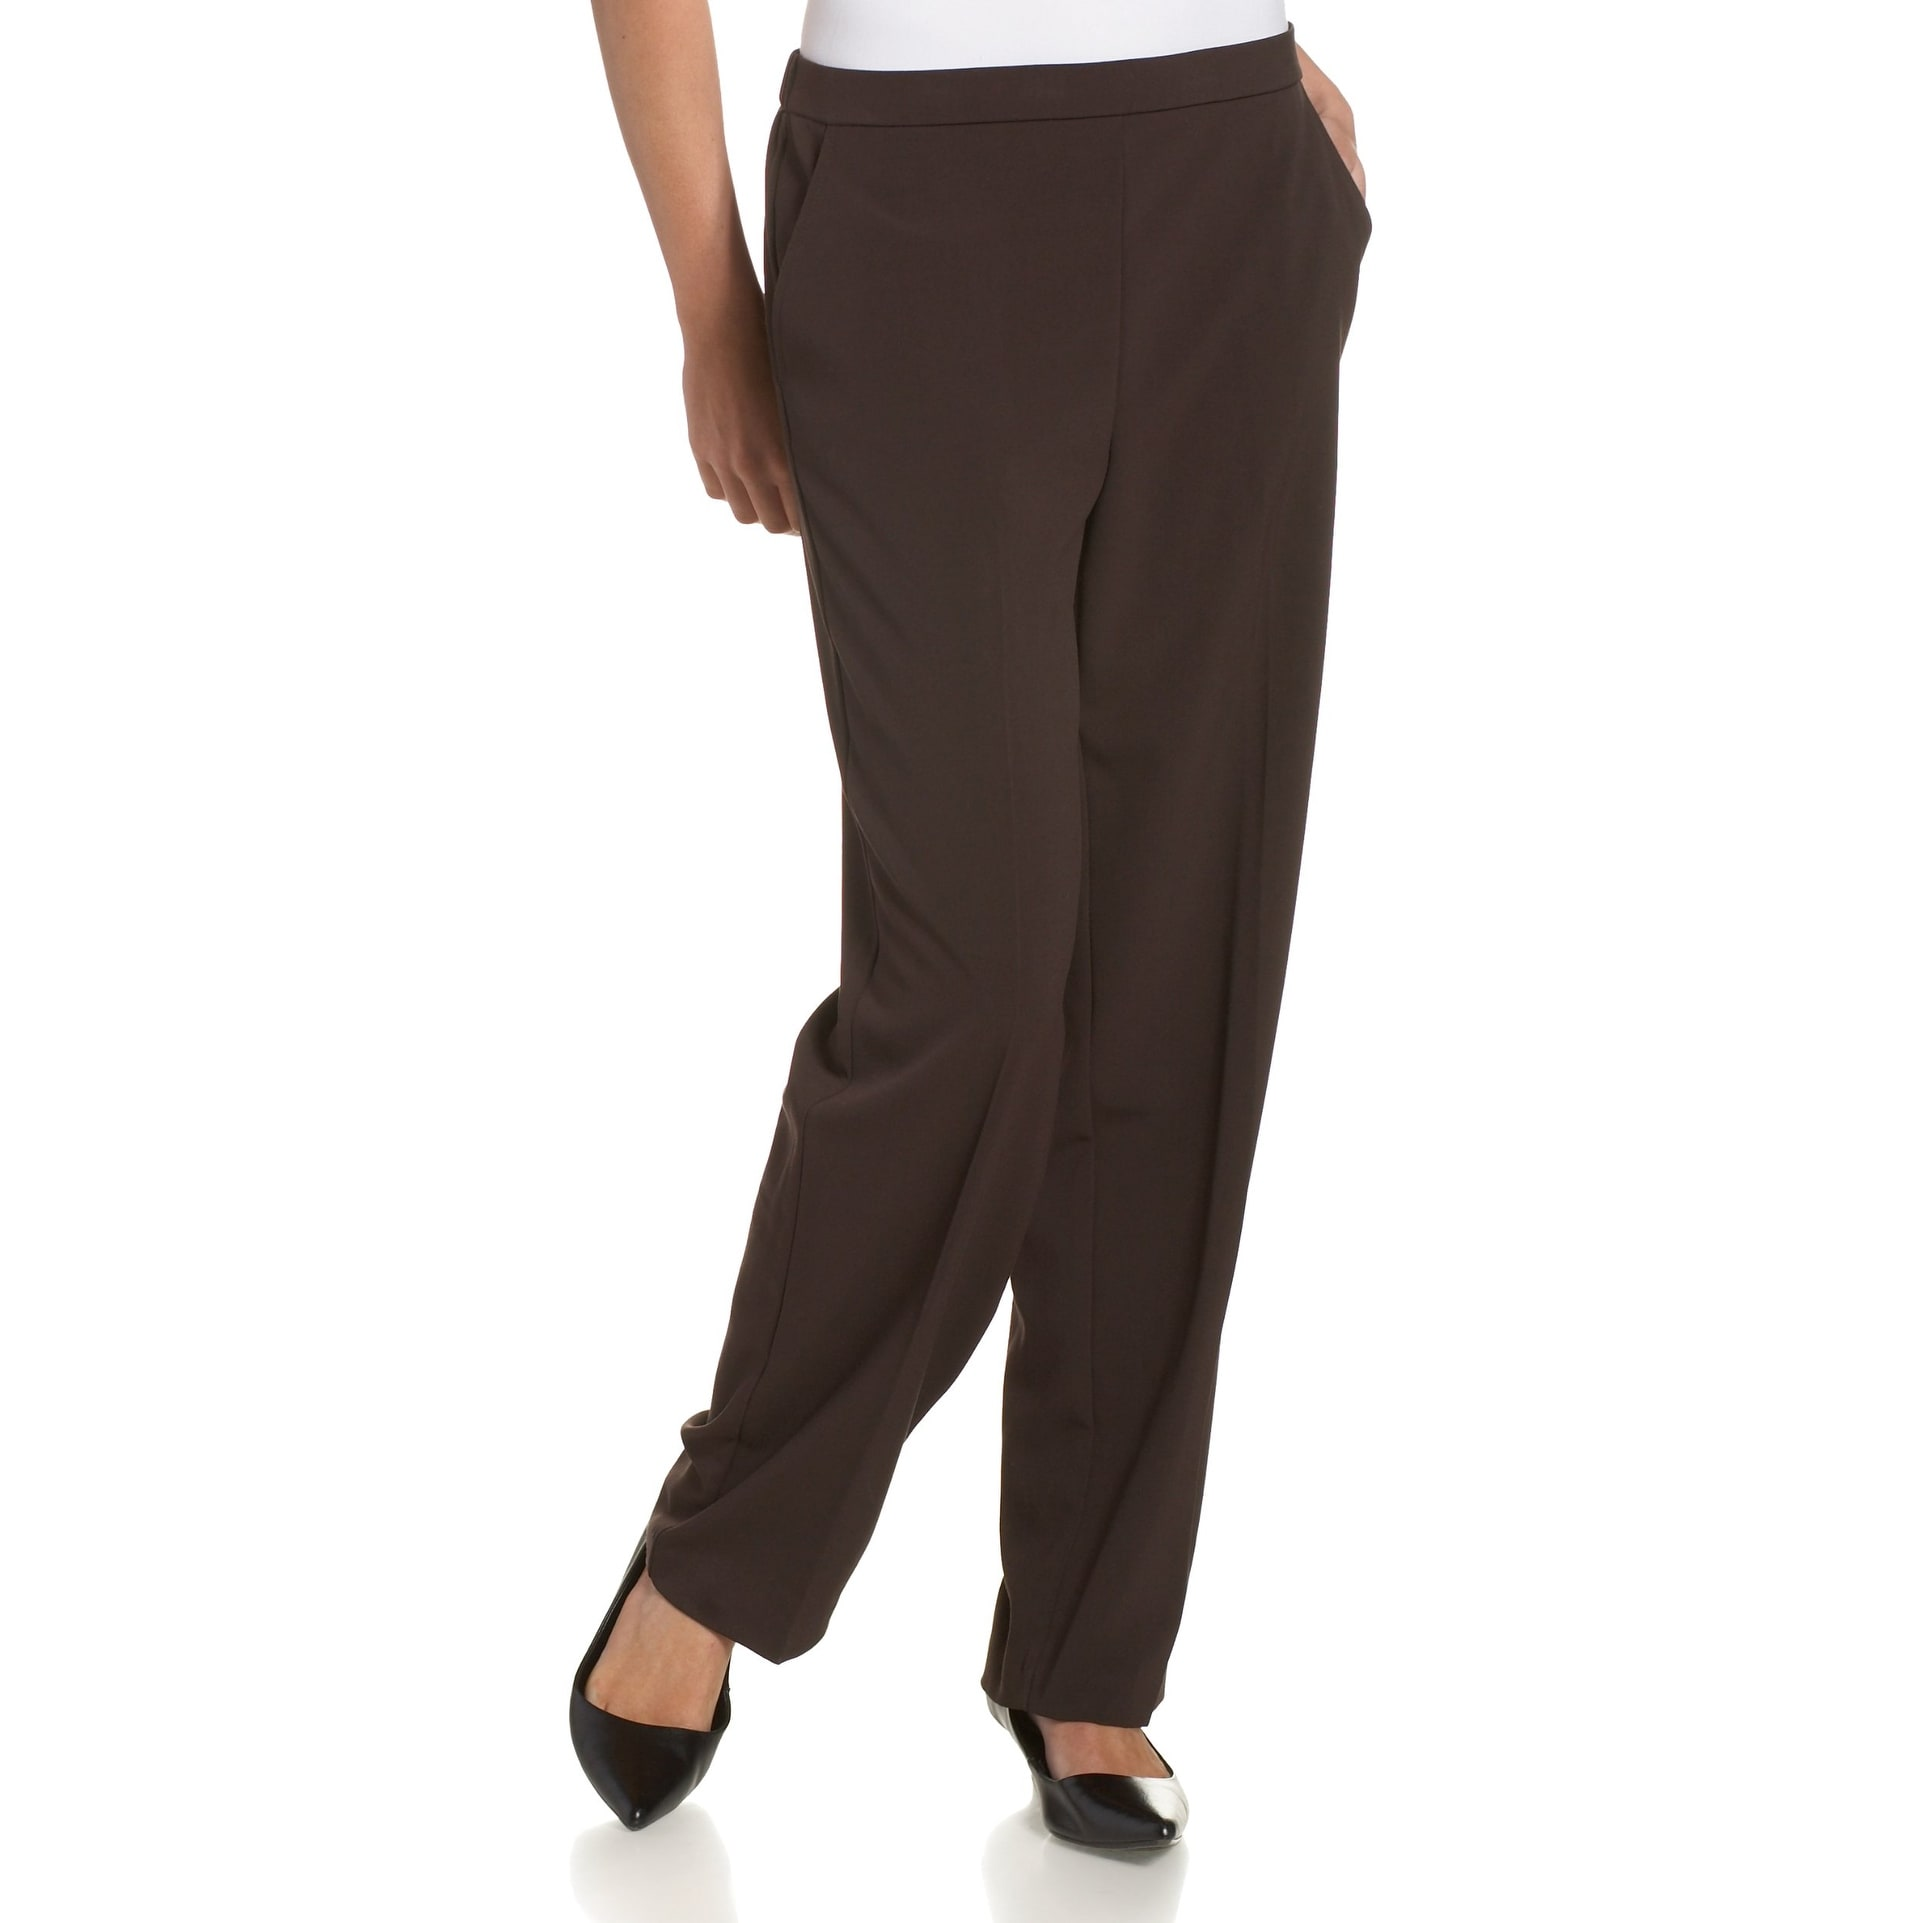 c024b81c6 Shop Briggs Brown Women's Size 16X30 Pull On Dress Pants Stretch ...